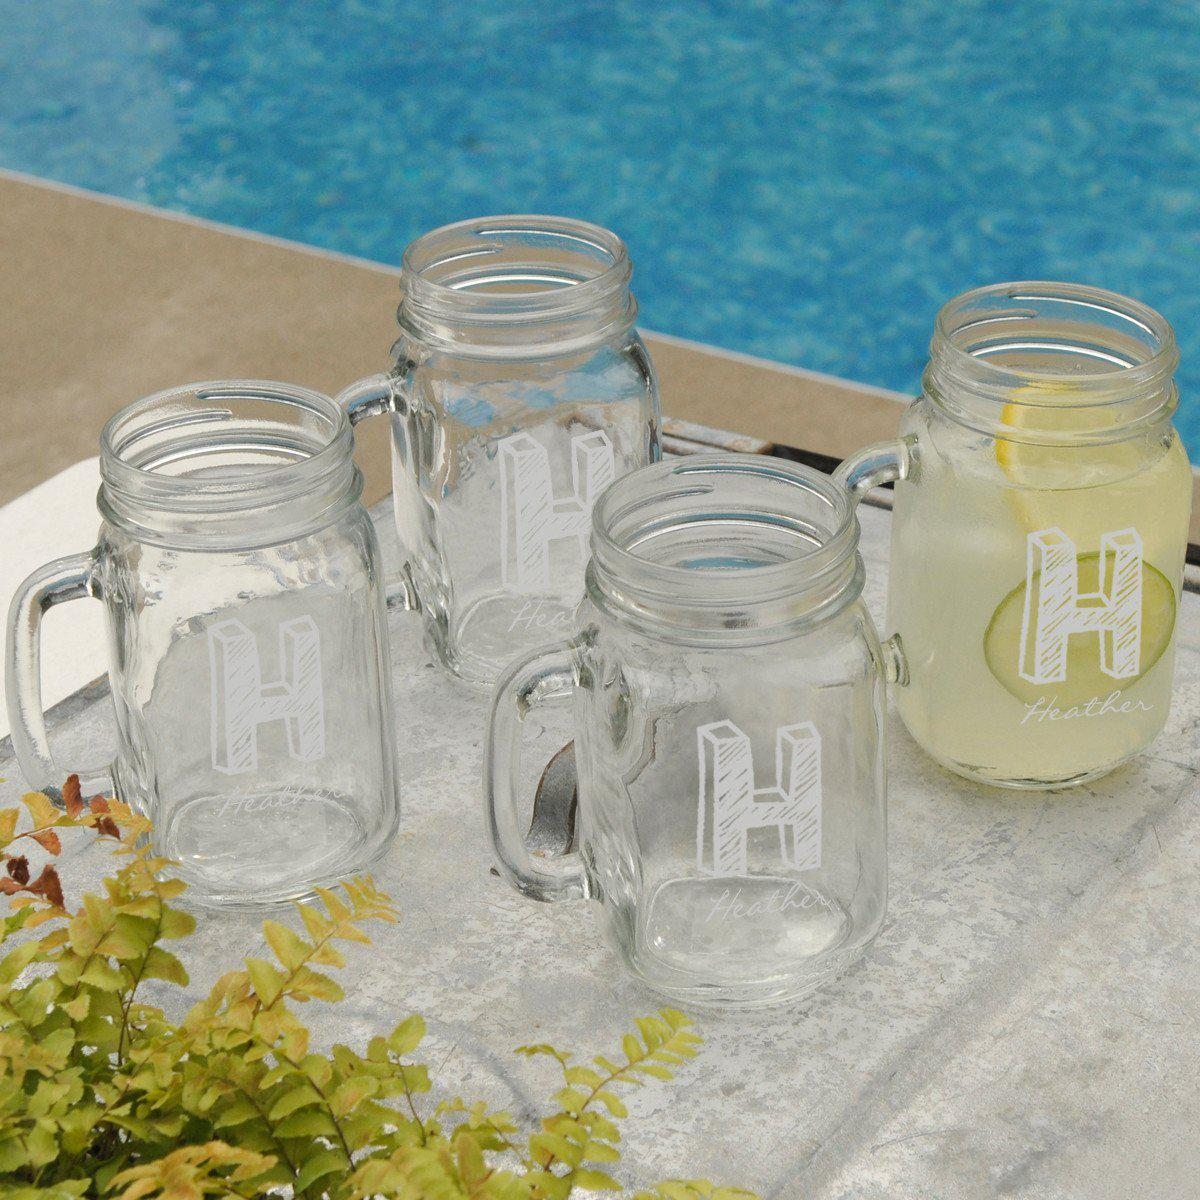 Personalized Glasses - Set of 4 - Mason Jars - Glassware - Wedding Gifts